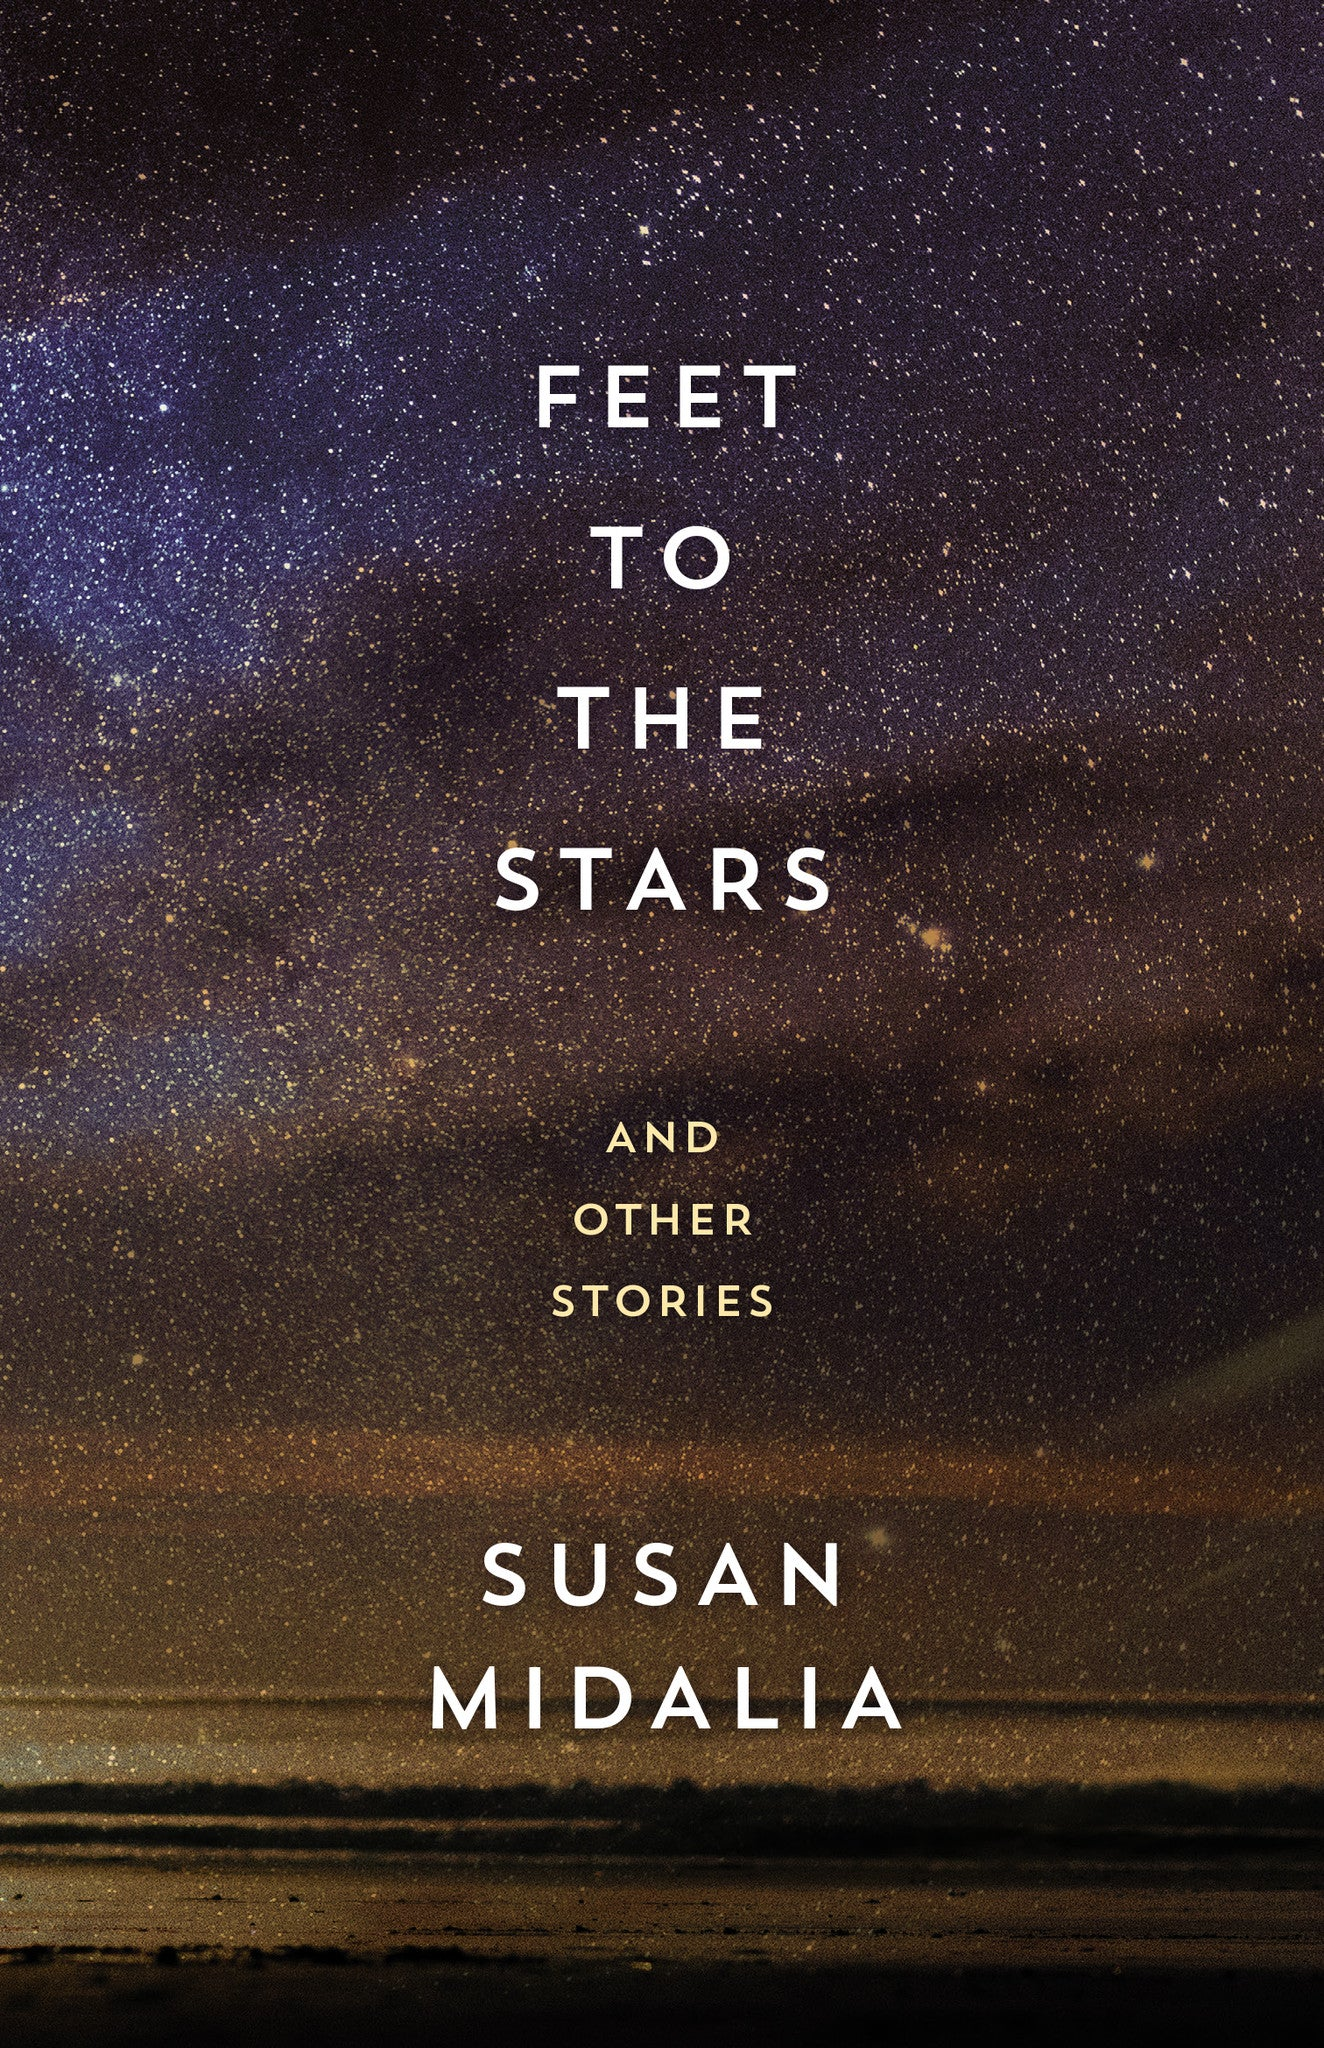 Feet to the Stars: and other stories